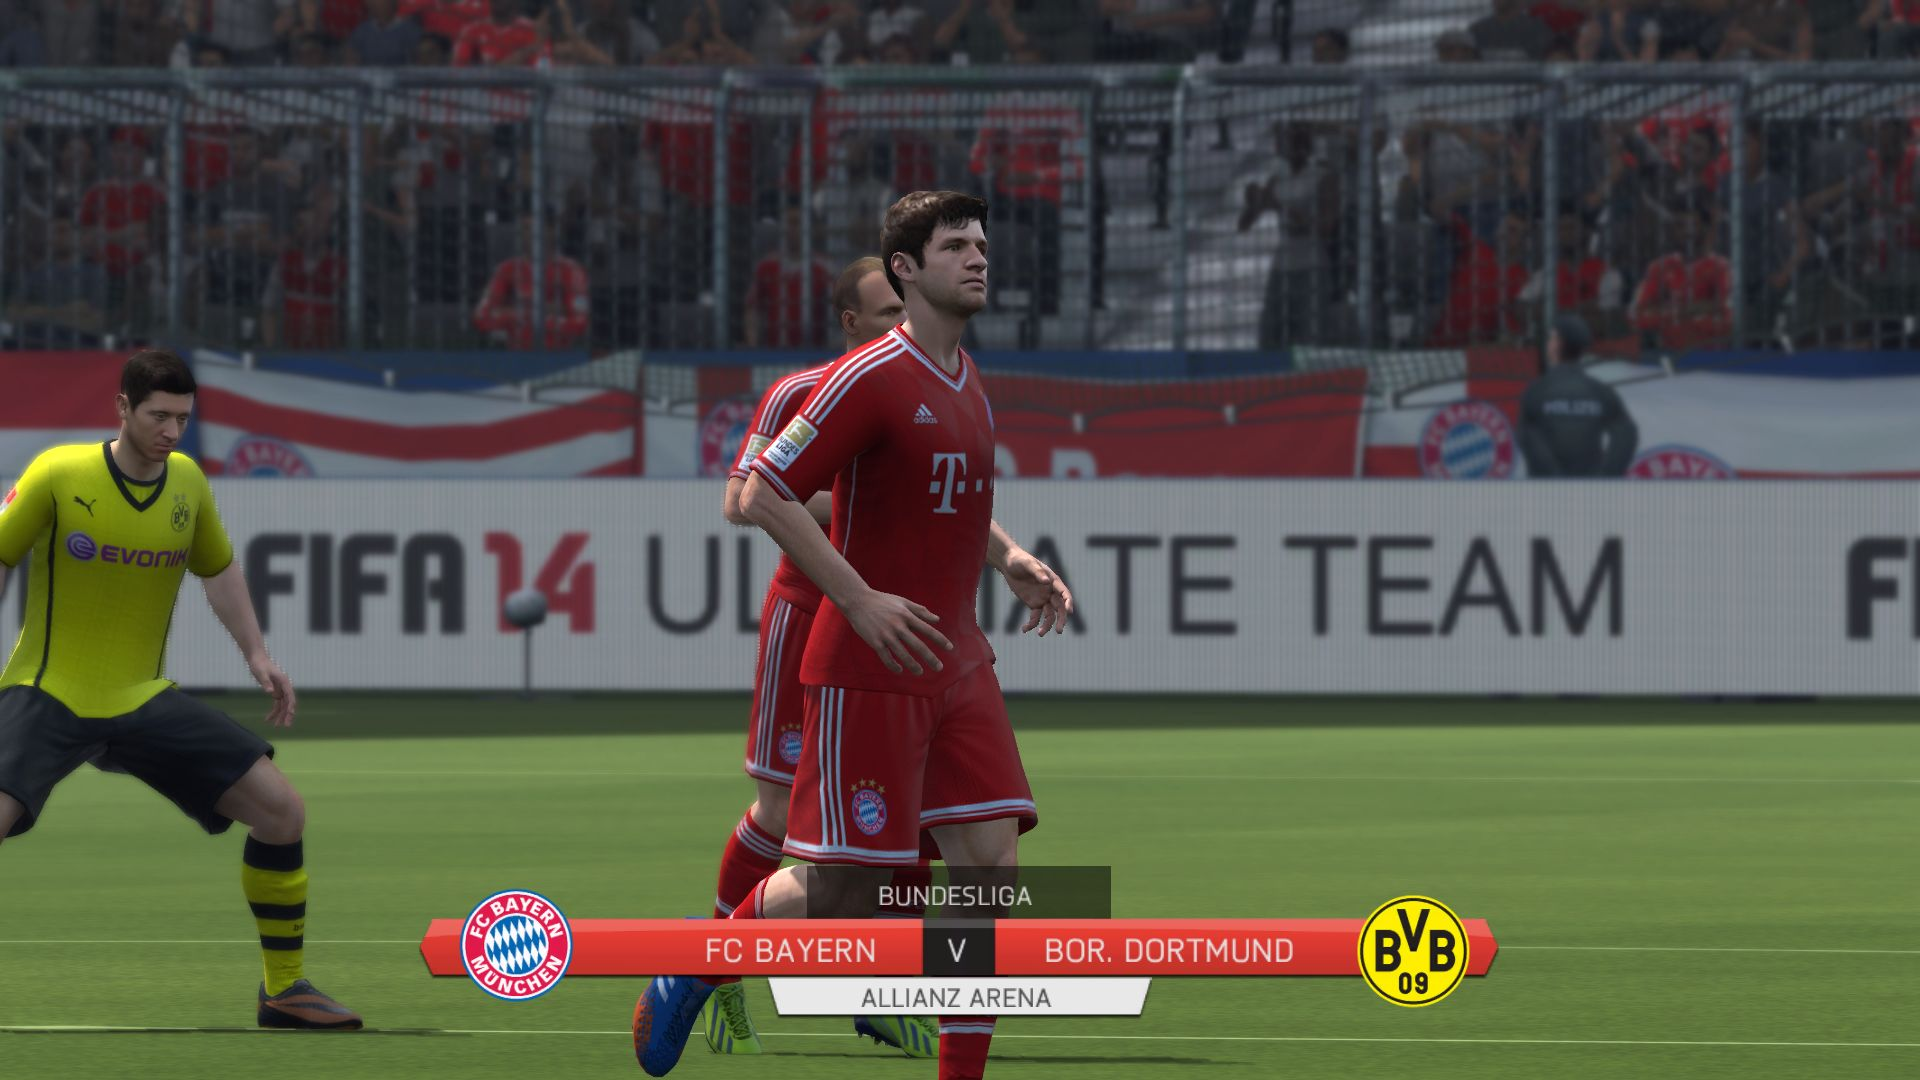 fifa 14 benchmarked